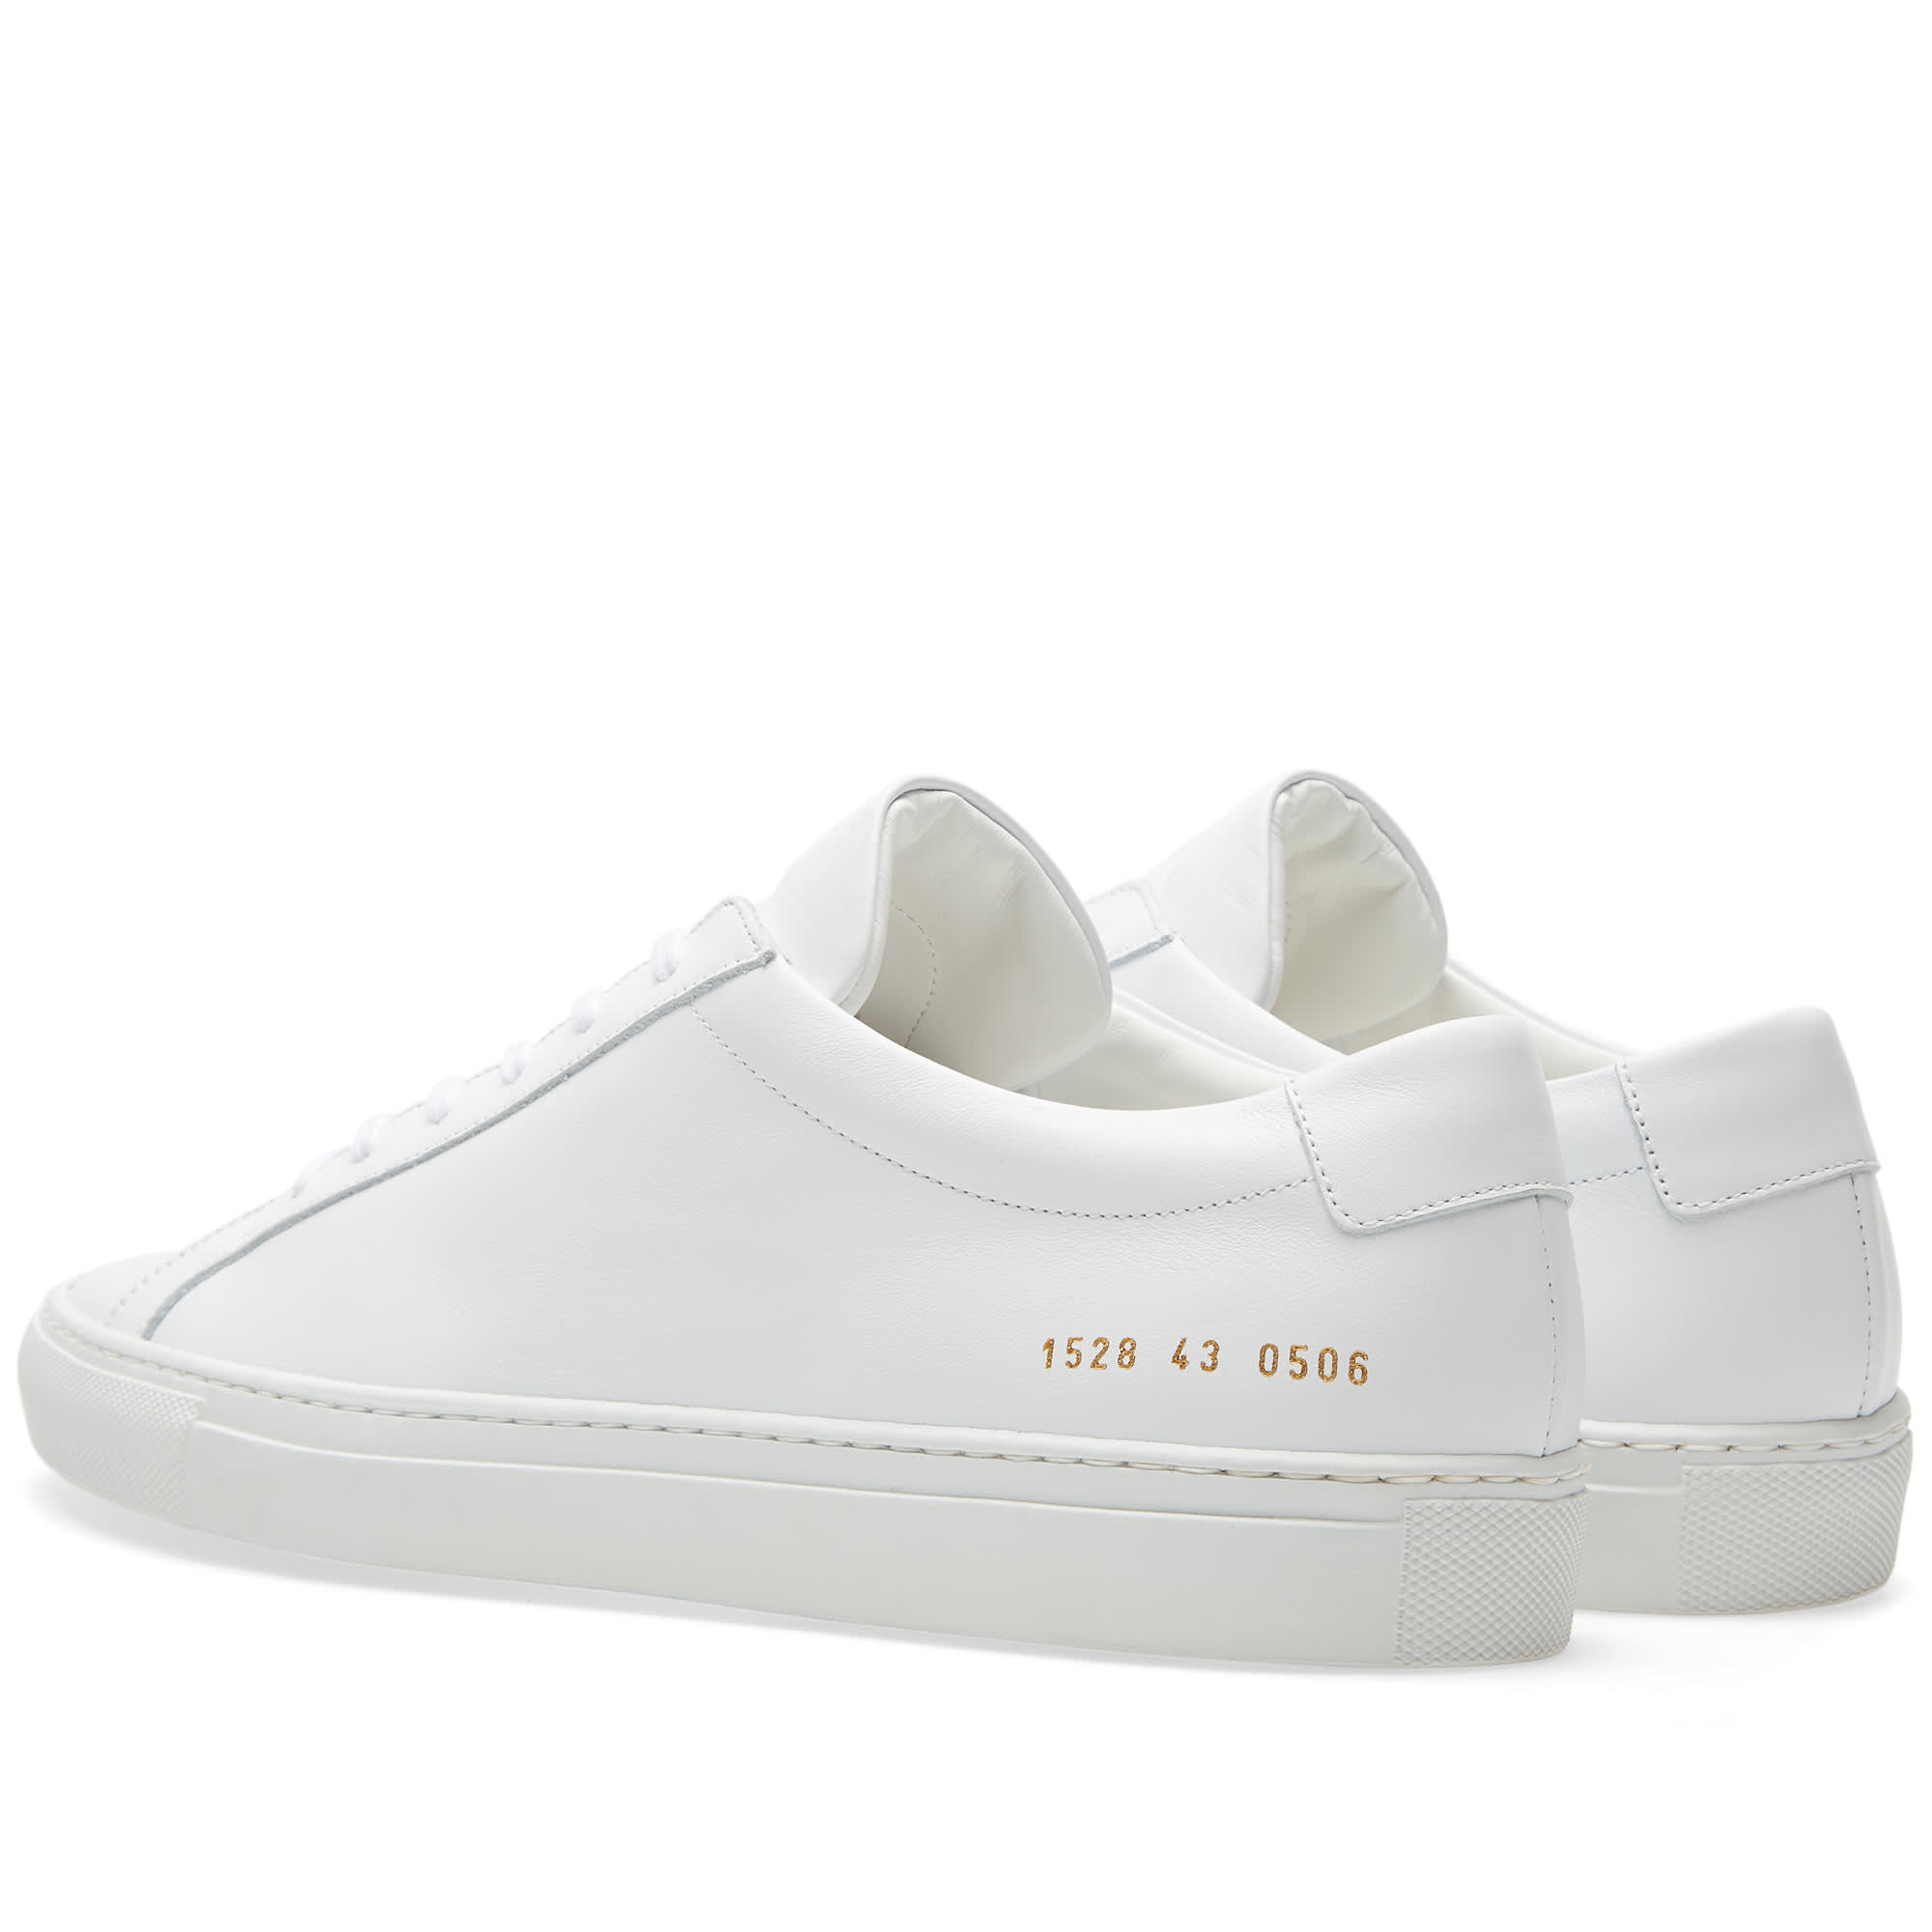 common projects achilles low white Common projects original achilles low white common projects original achilles low black common projects original achilles low pink common projects original achilles mid white common.